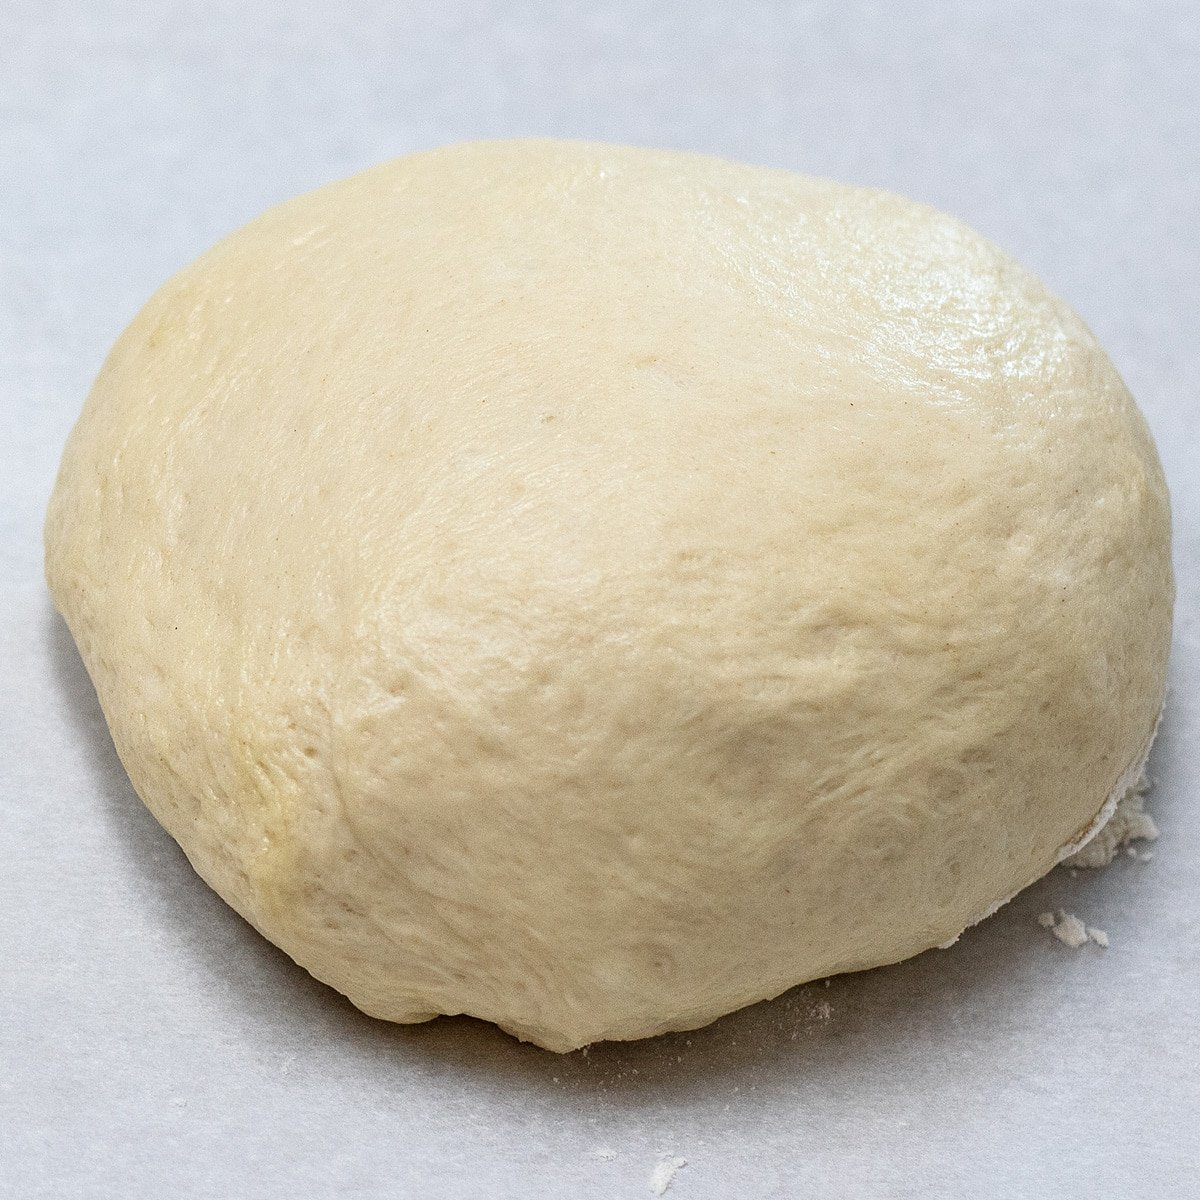 Shaped pizza dough round ready to rise on parchment paper.